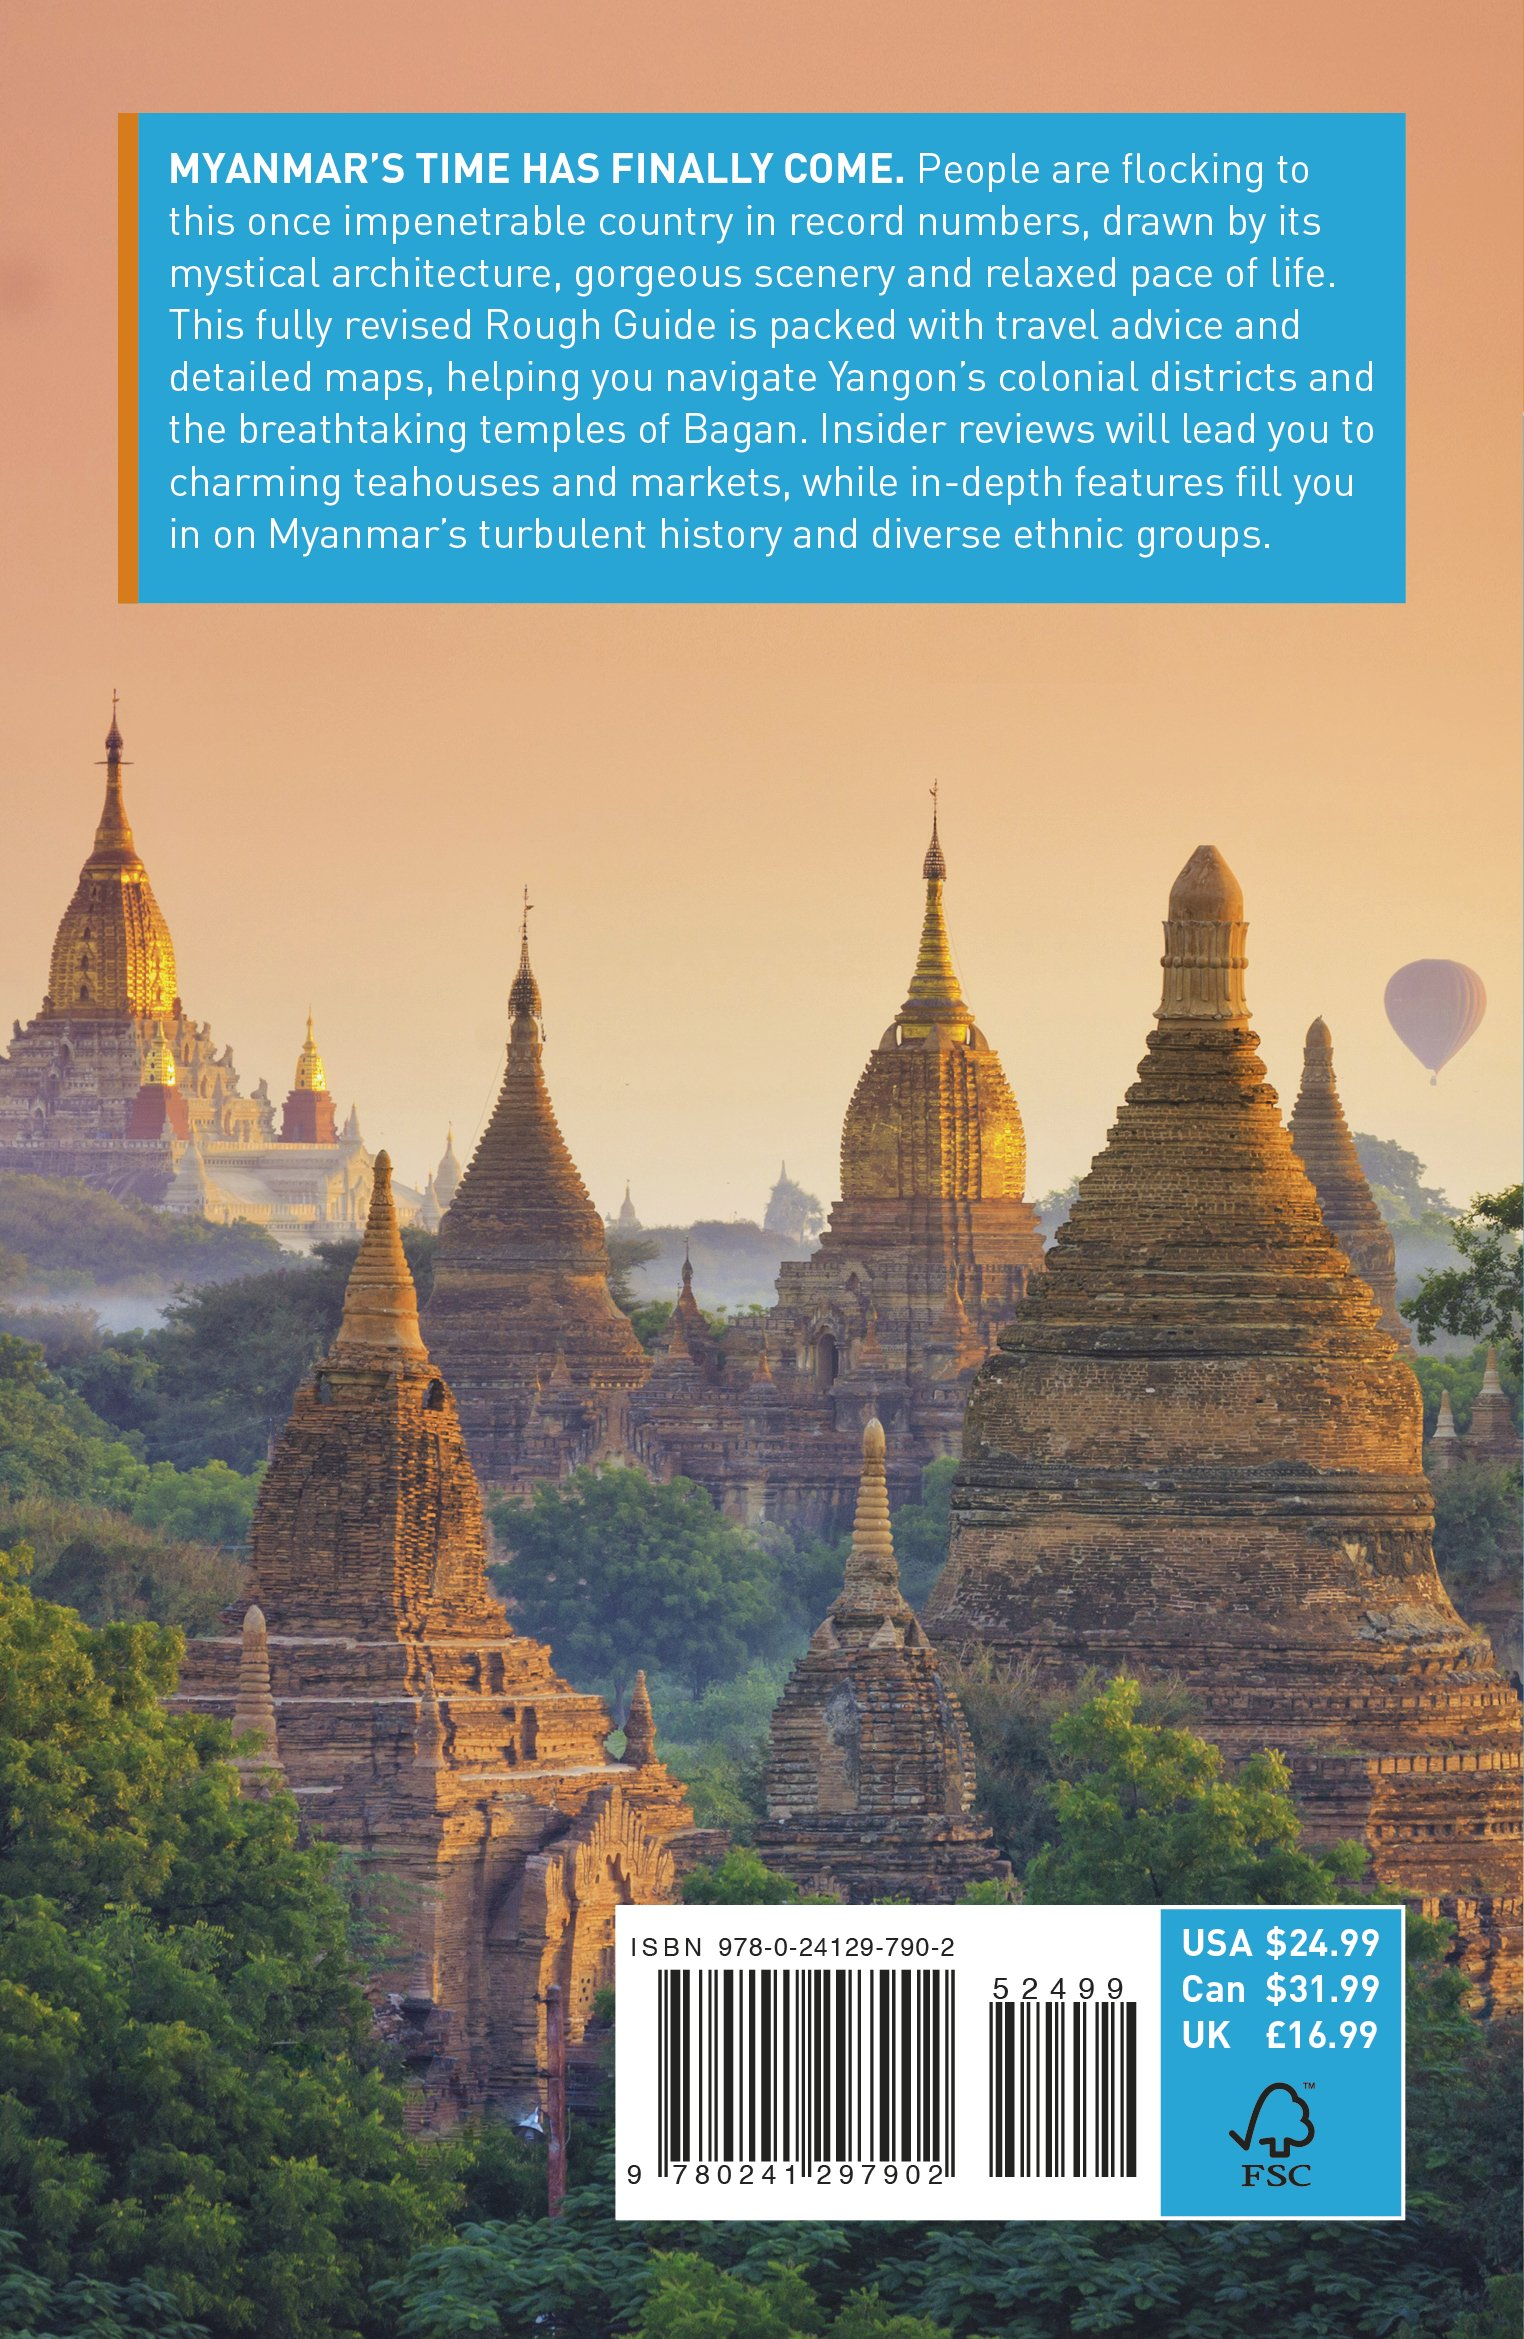 f4a01281f8 The Rough Guide to Myanmar (Burma) (Travel Guide) (Rough Guides) Paperback  – 2 Nov 2017